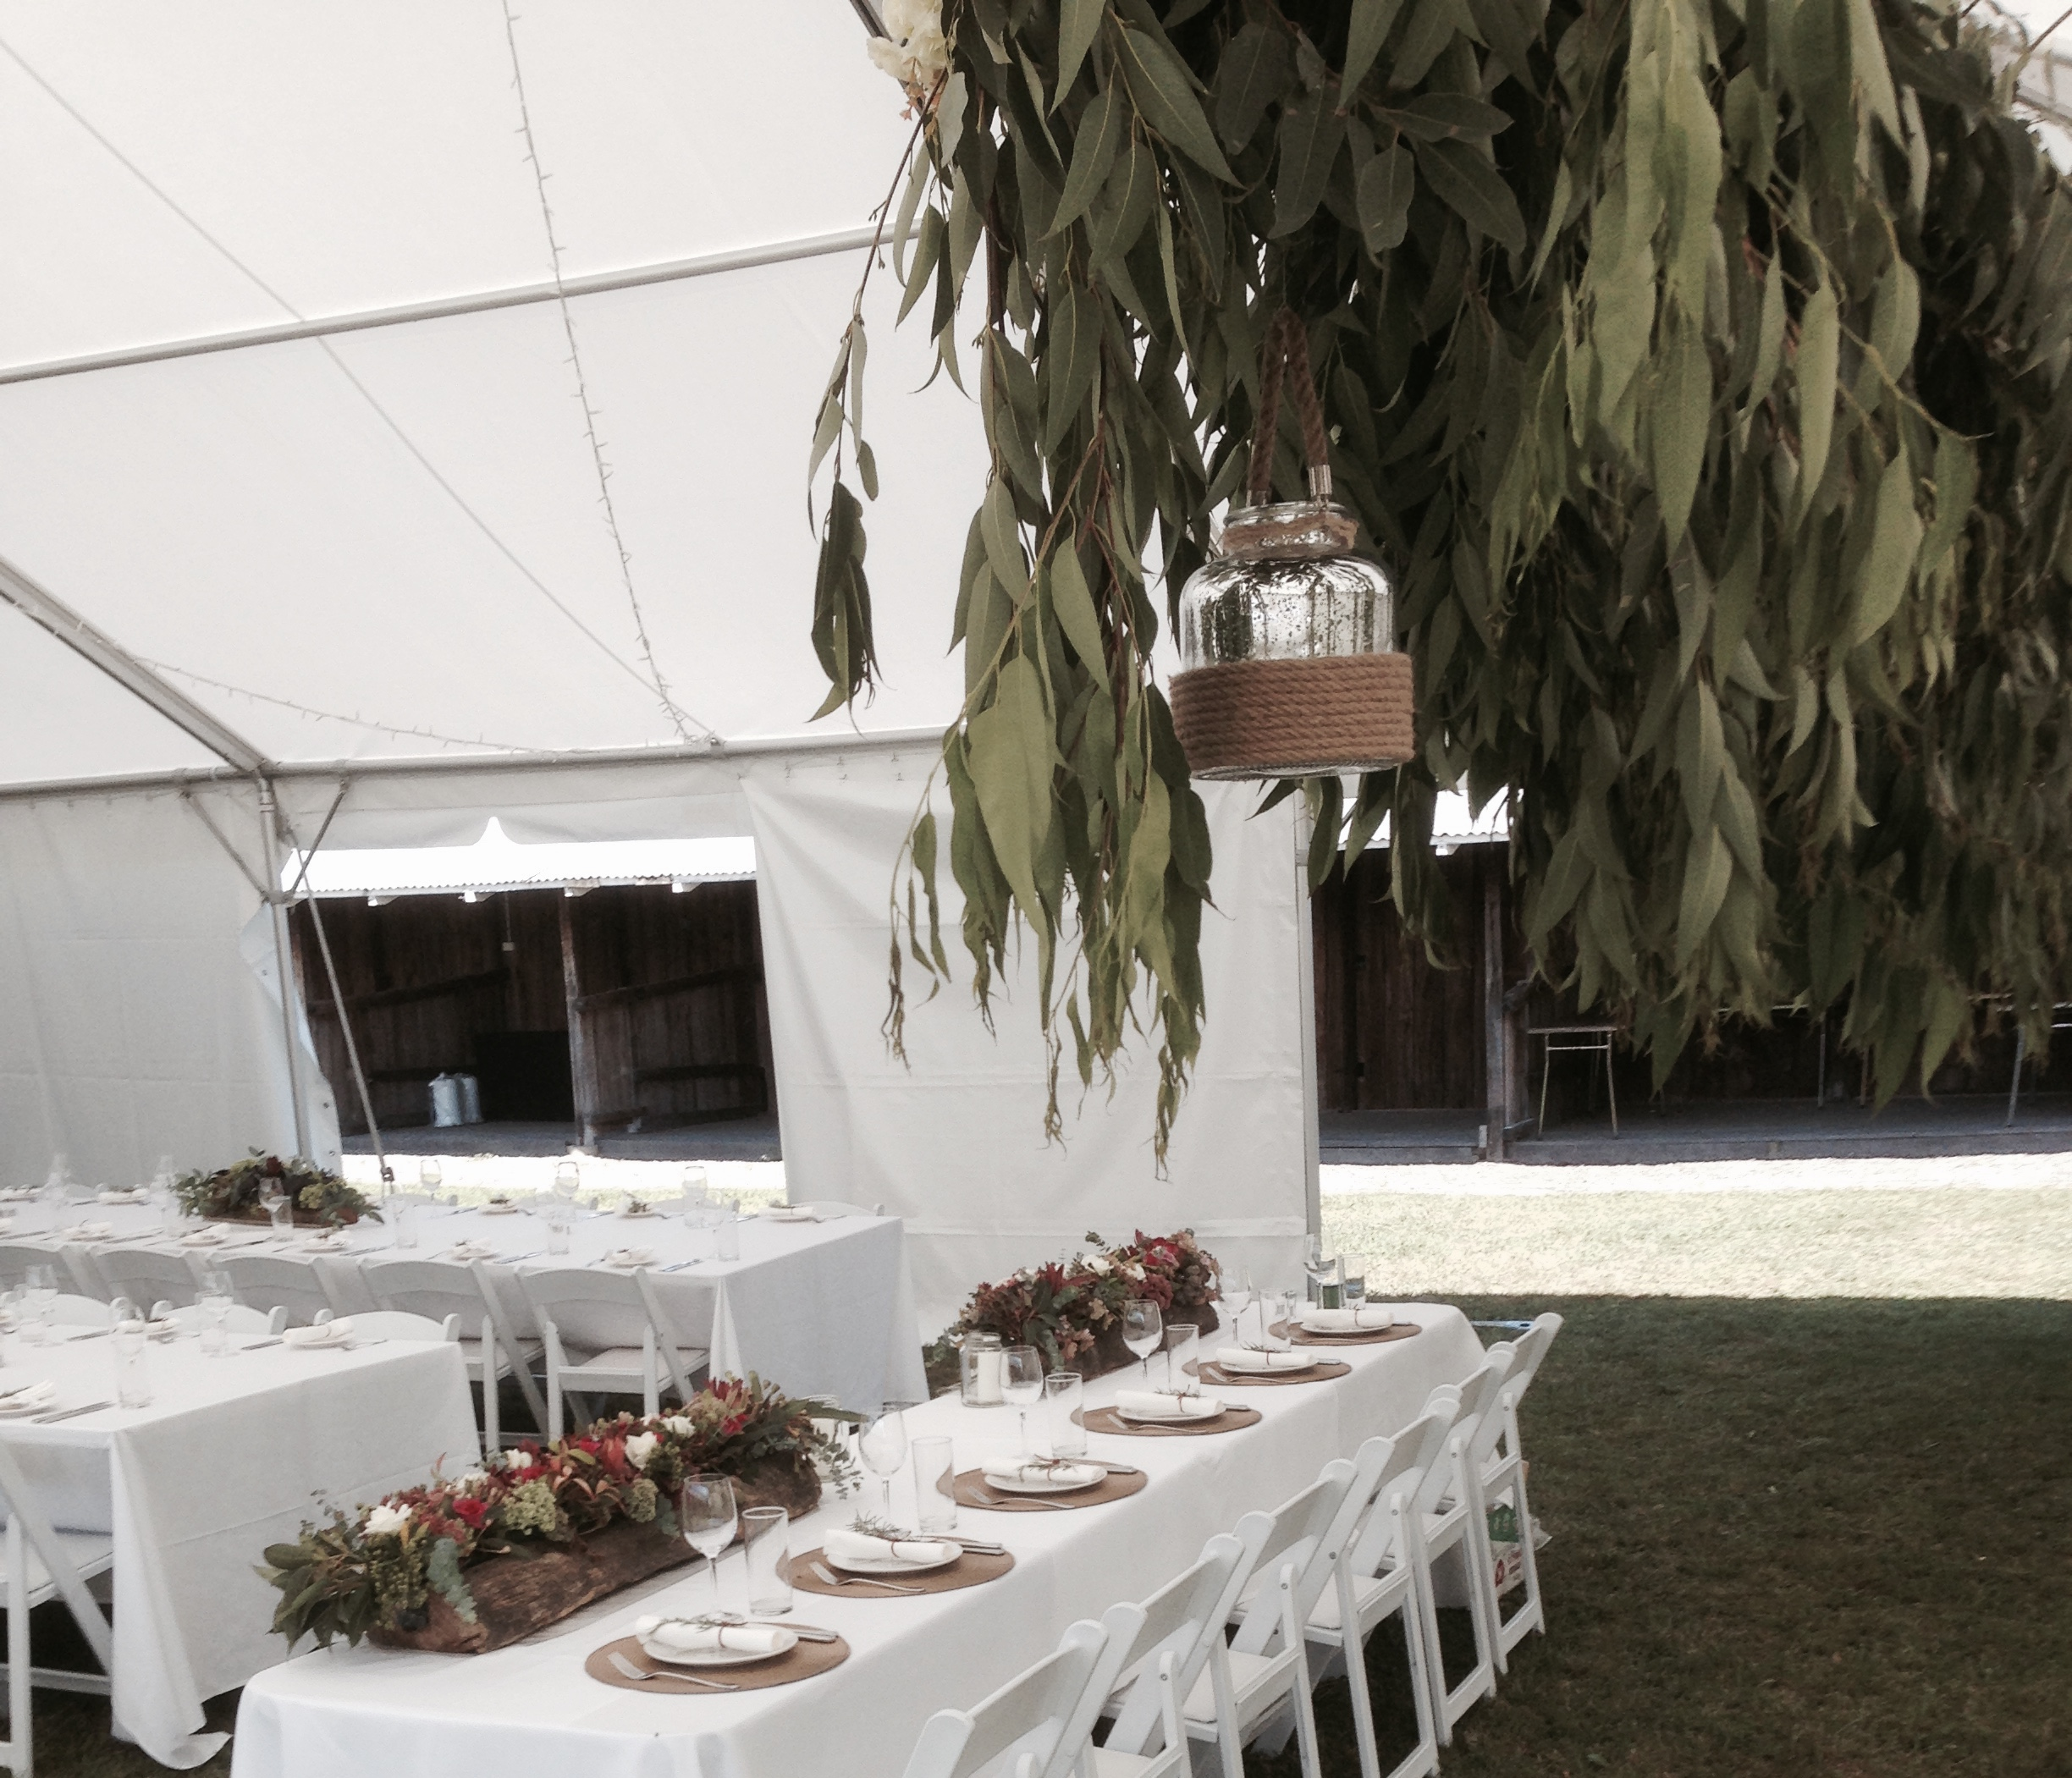 Inside the Marquee at Showgrounds